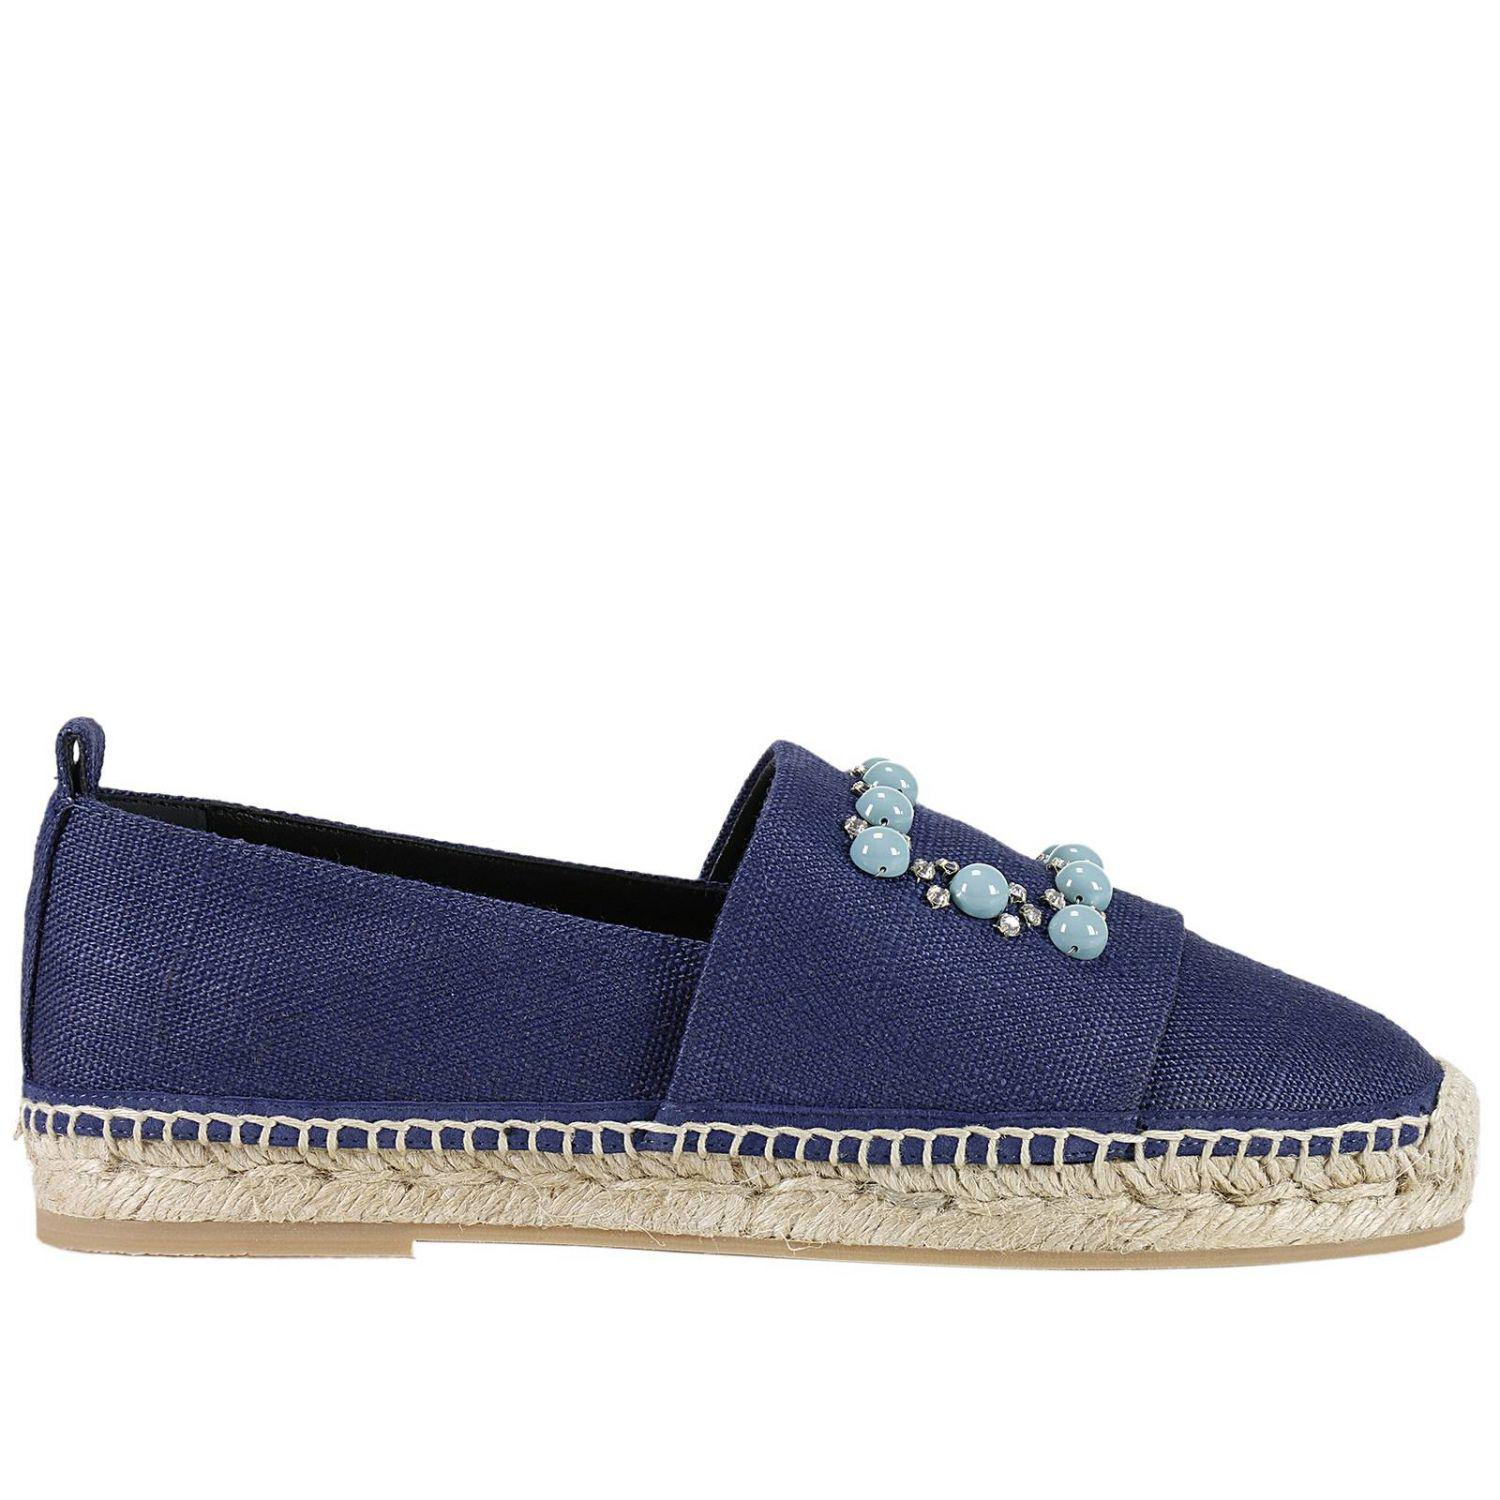 Roger Vivier Shoes Price